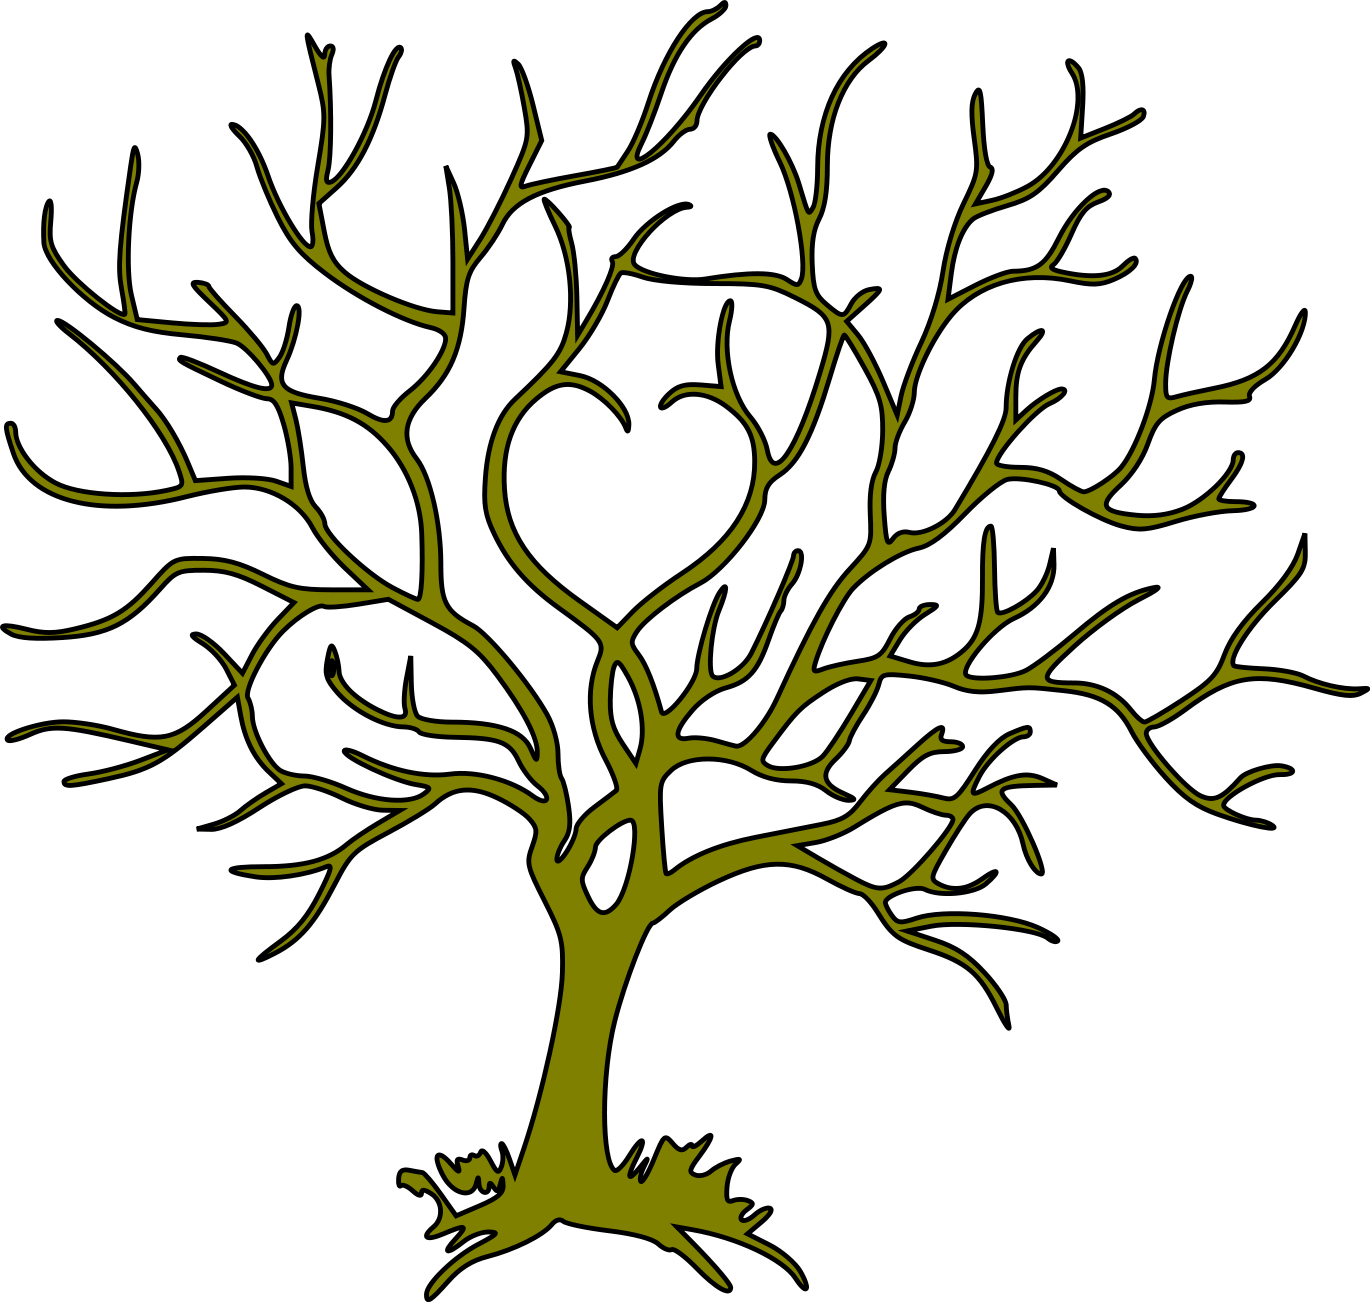 Bare Christmas Tree Clipart.Free Svg Pdc Bare Tree 10 3 2011 Svg Box From